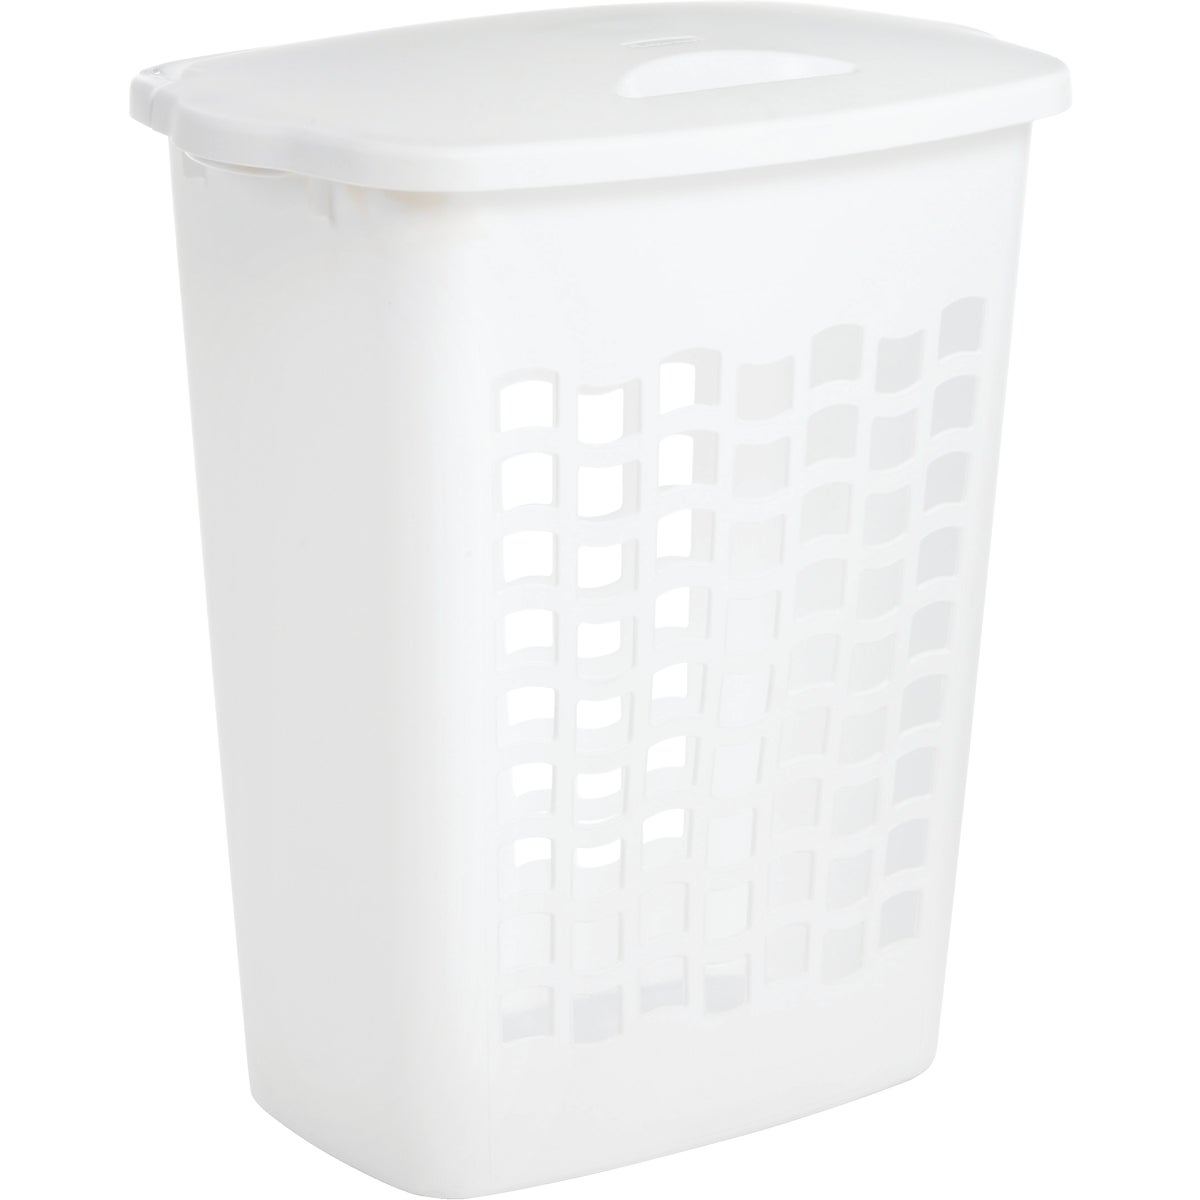 2.2BU WHT CLOTHES HAMPER - 2656TPWHT by Rubbermaid Home